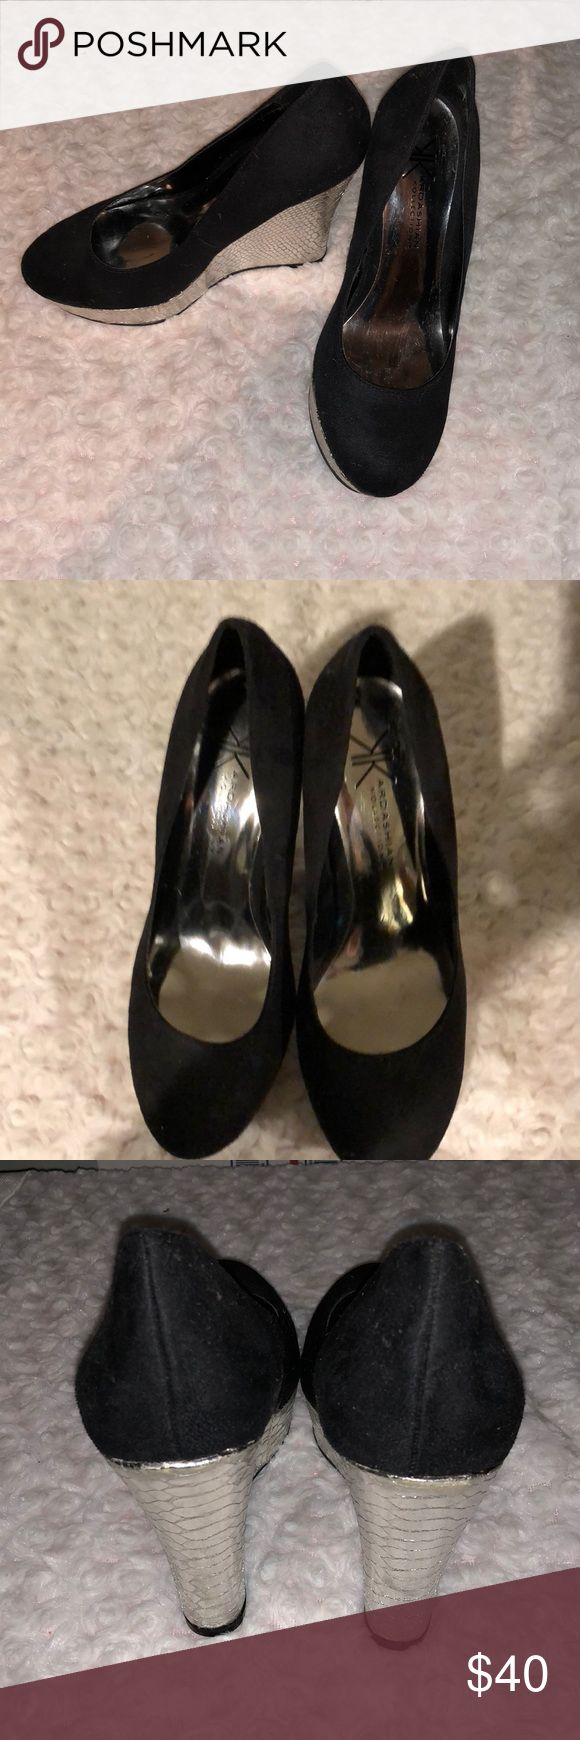 Kardashian Kollection Wedges Kardashian Kollection Wedges. Size 7.5. Brand new never worn. The tops are like a suede material. These are absolutely stunning 😍 Kardashian Kollection Shoes